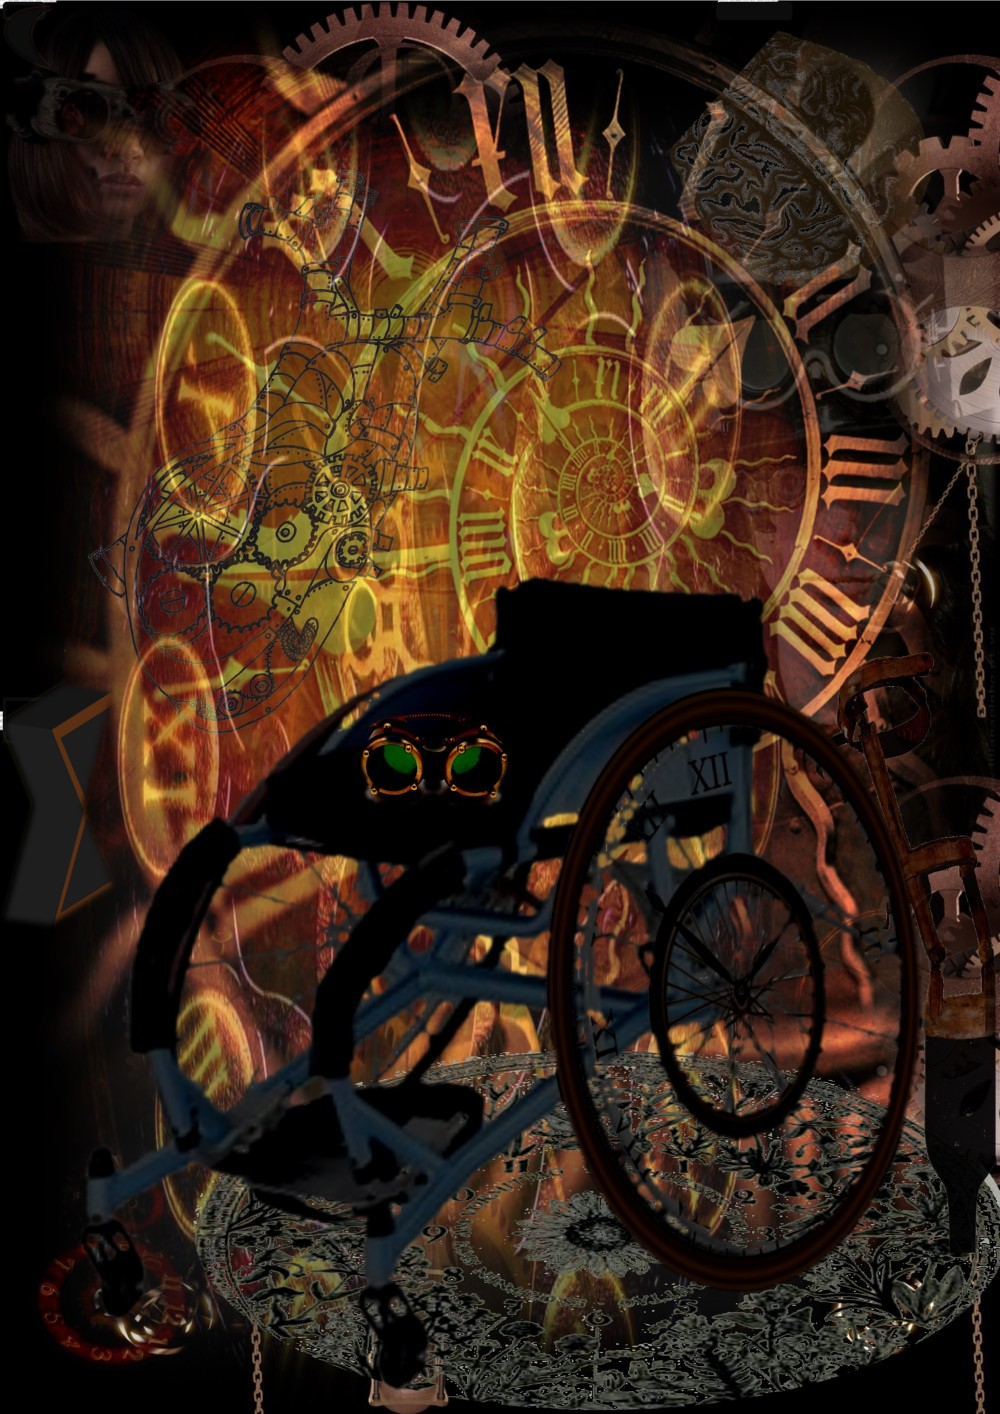 Wheels of Time by Antonia Sara Zenkevitch